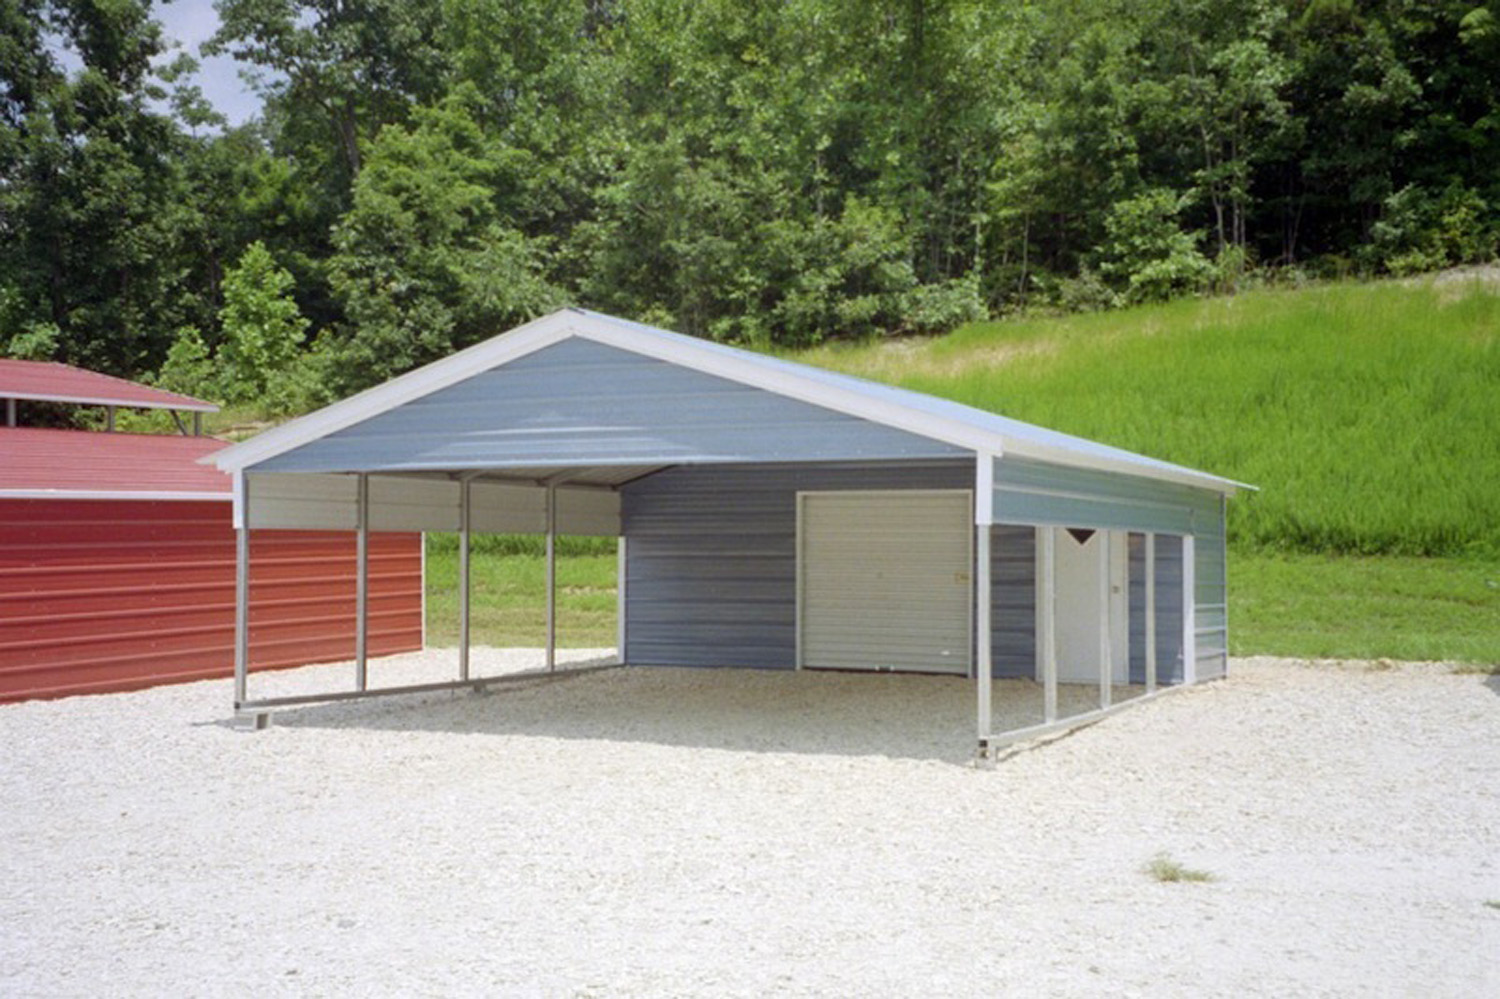 Steel carport kits metal carport kits 595 for Carport shed combo